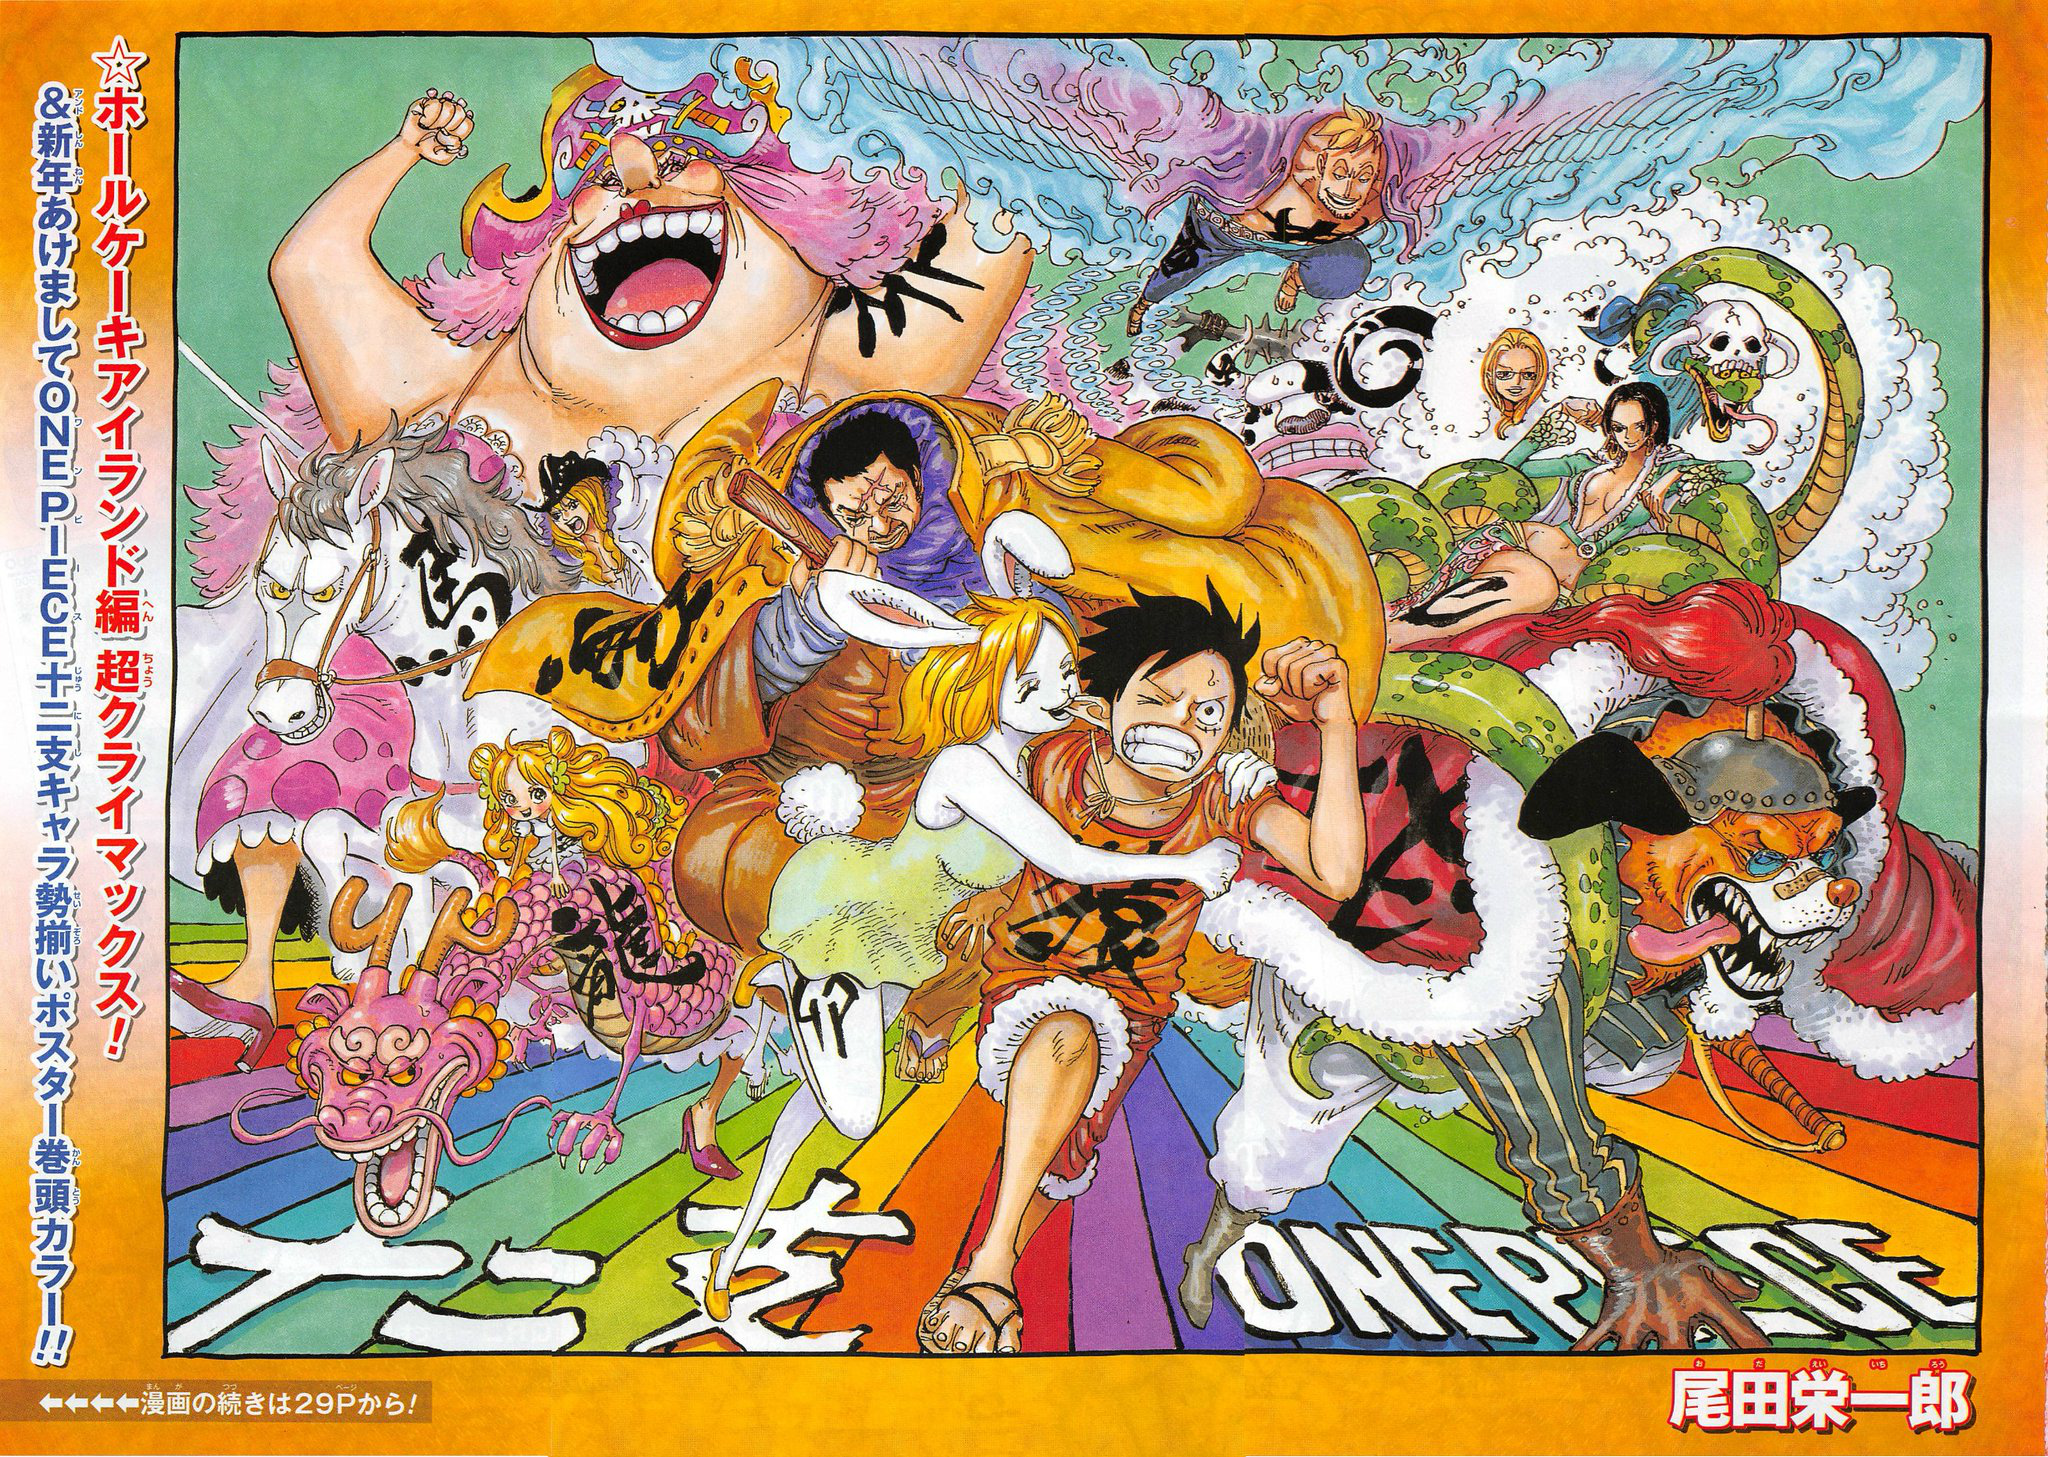 download one piece episode 816 eng sub